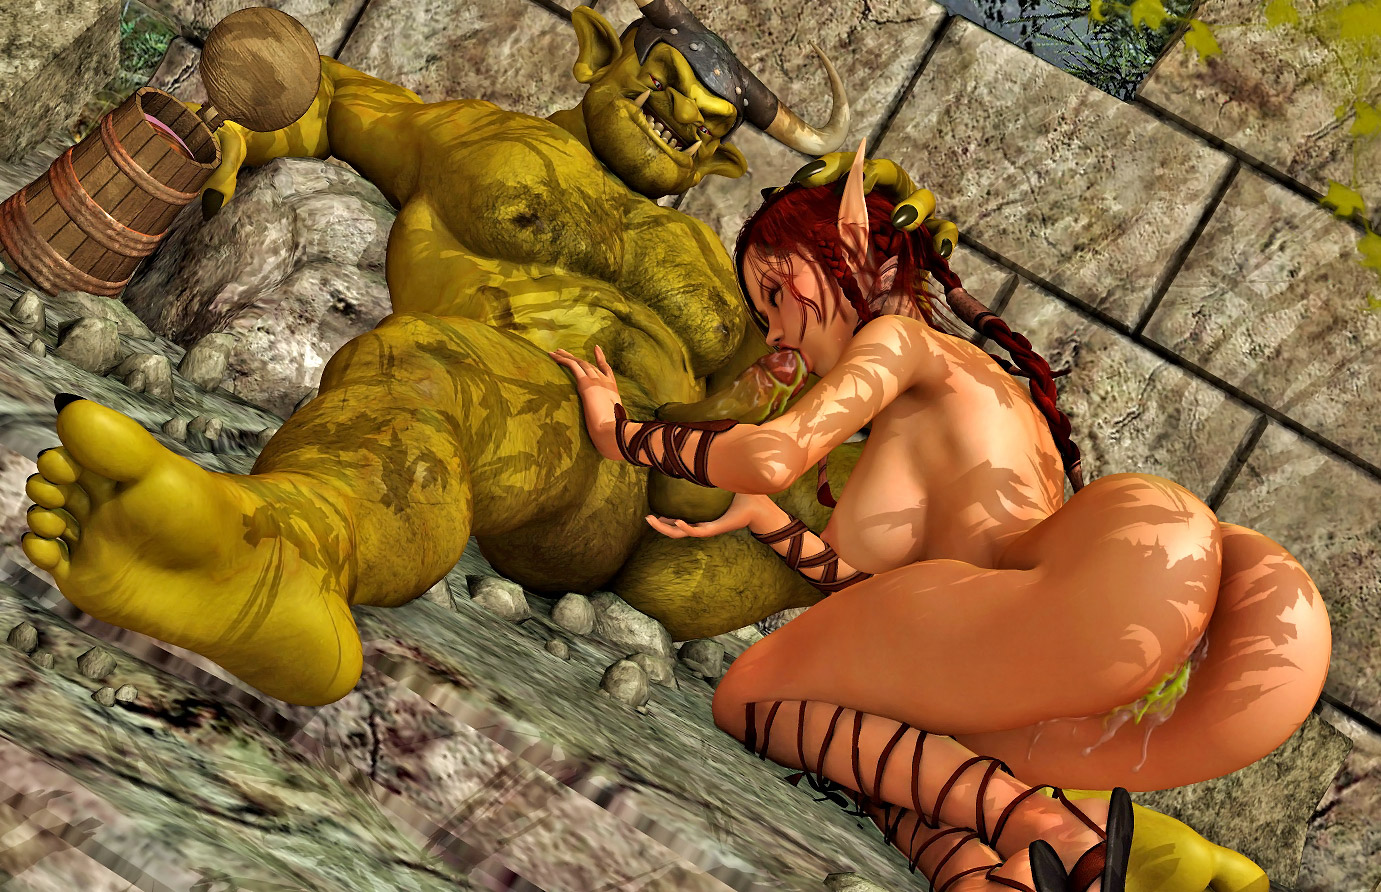 3d porn elf and orc pron picture